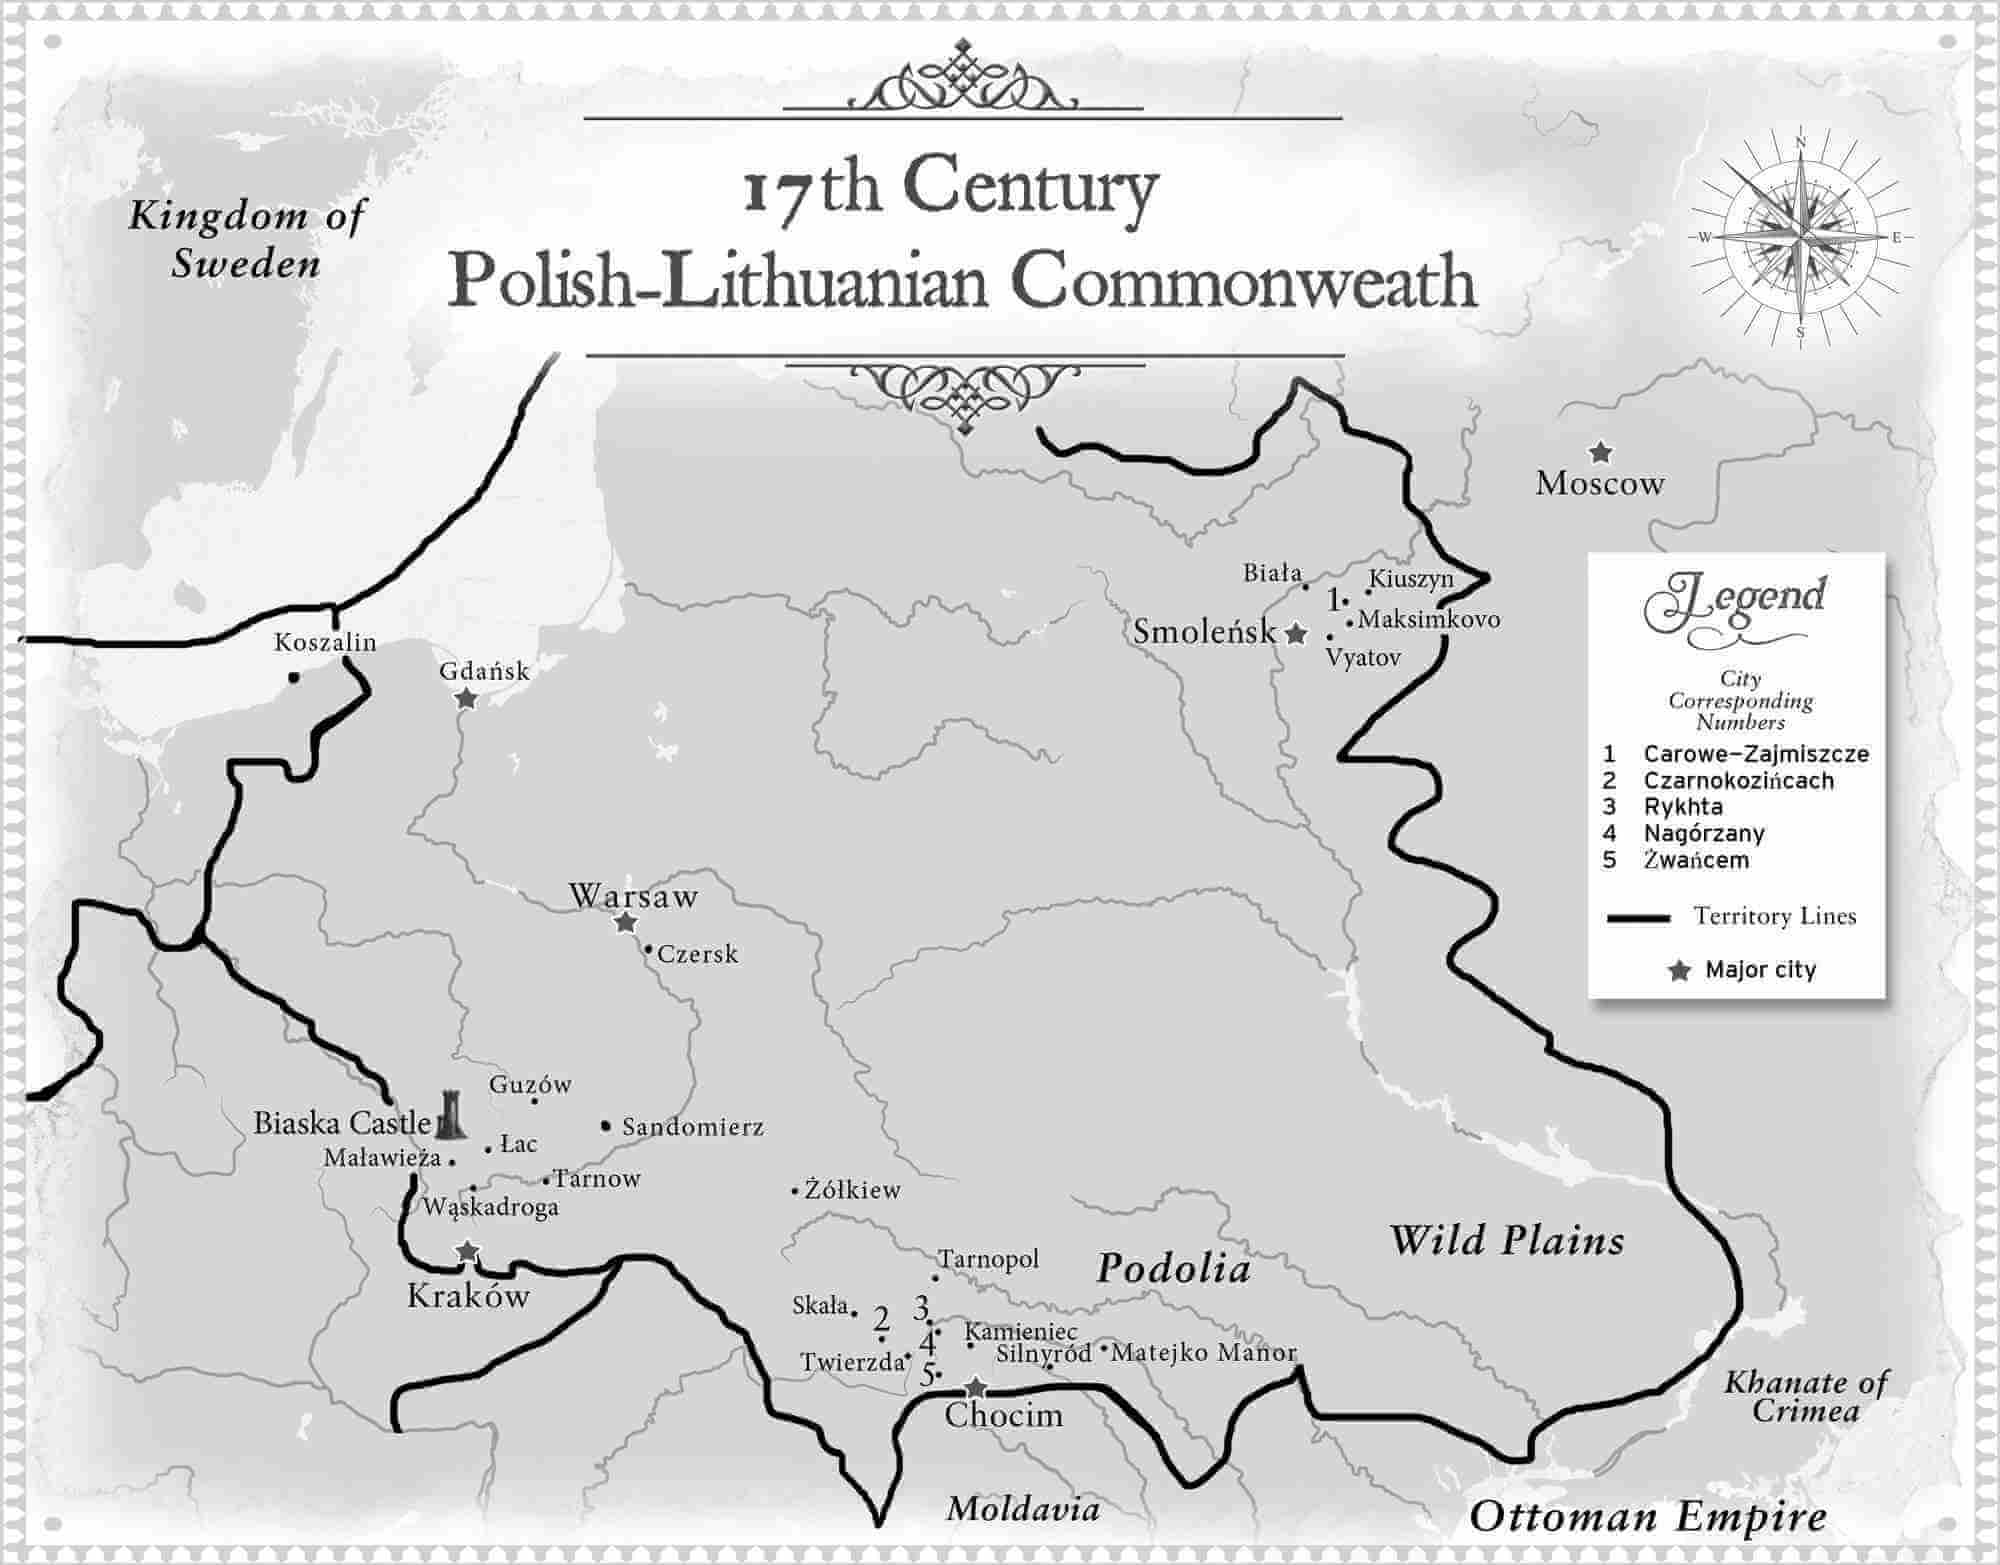 17th Century Map of Polish-Lithuanian Commonwealth